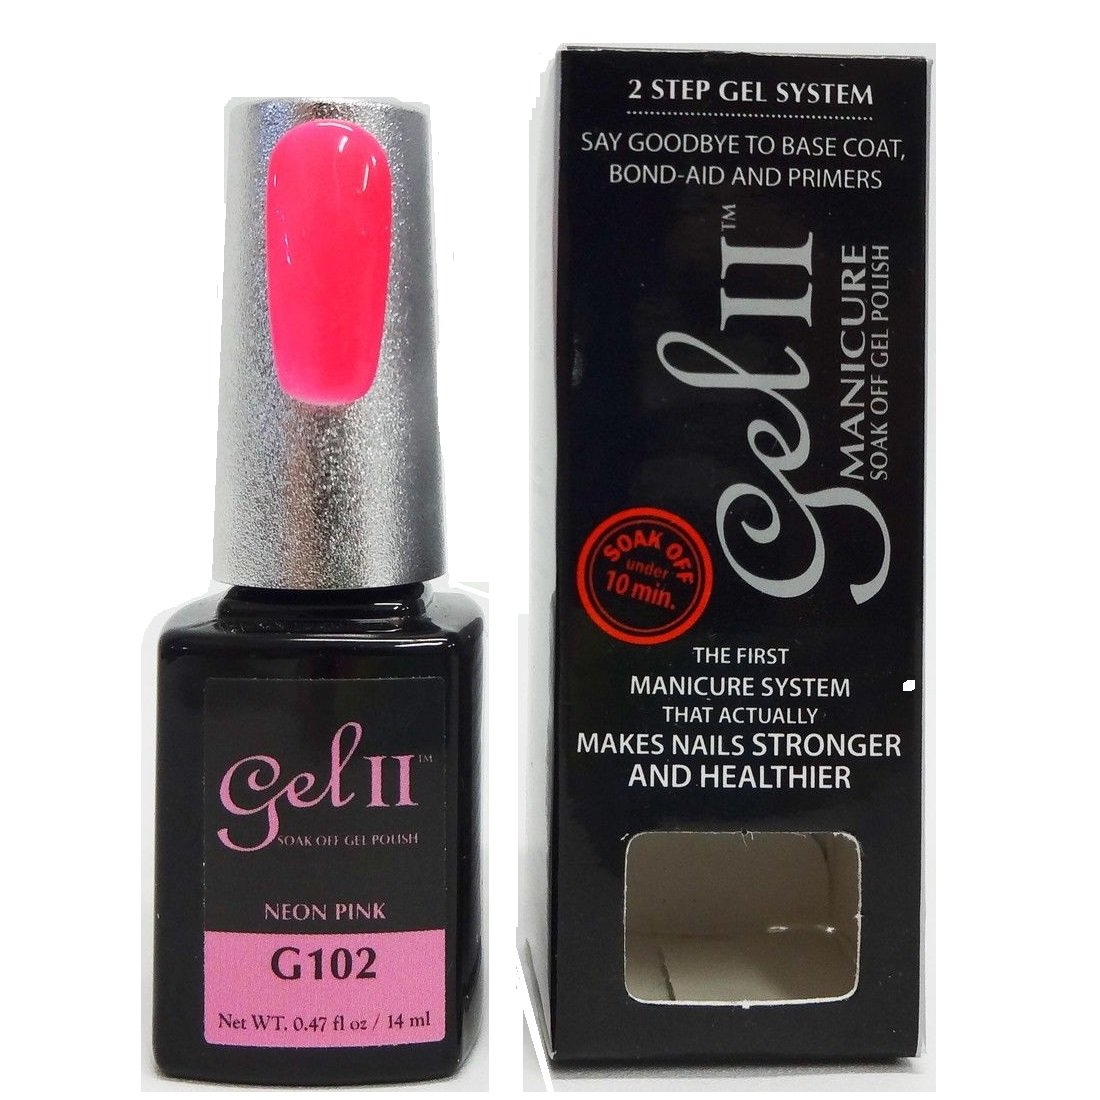 Amazon.com : Gel II Soak-Off Gel Polish, Neon Pink, 0.47 Ounce : Beauty